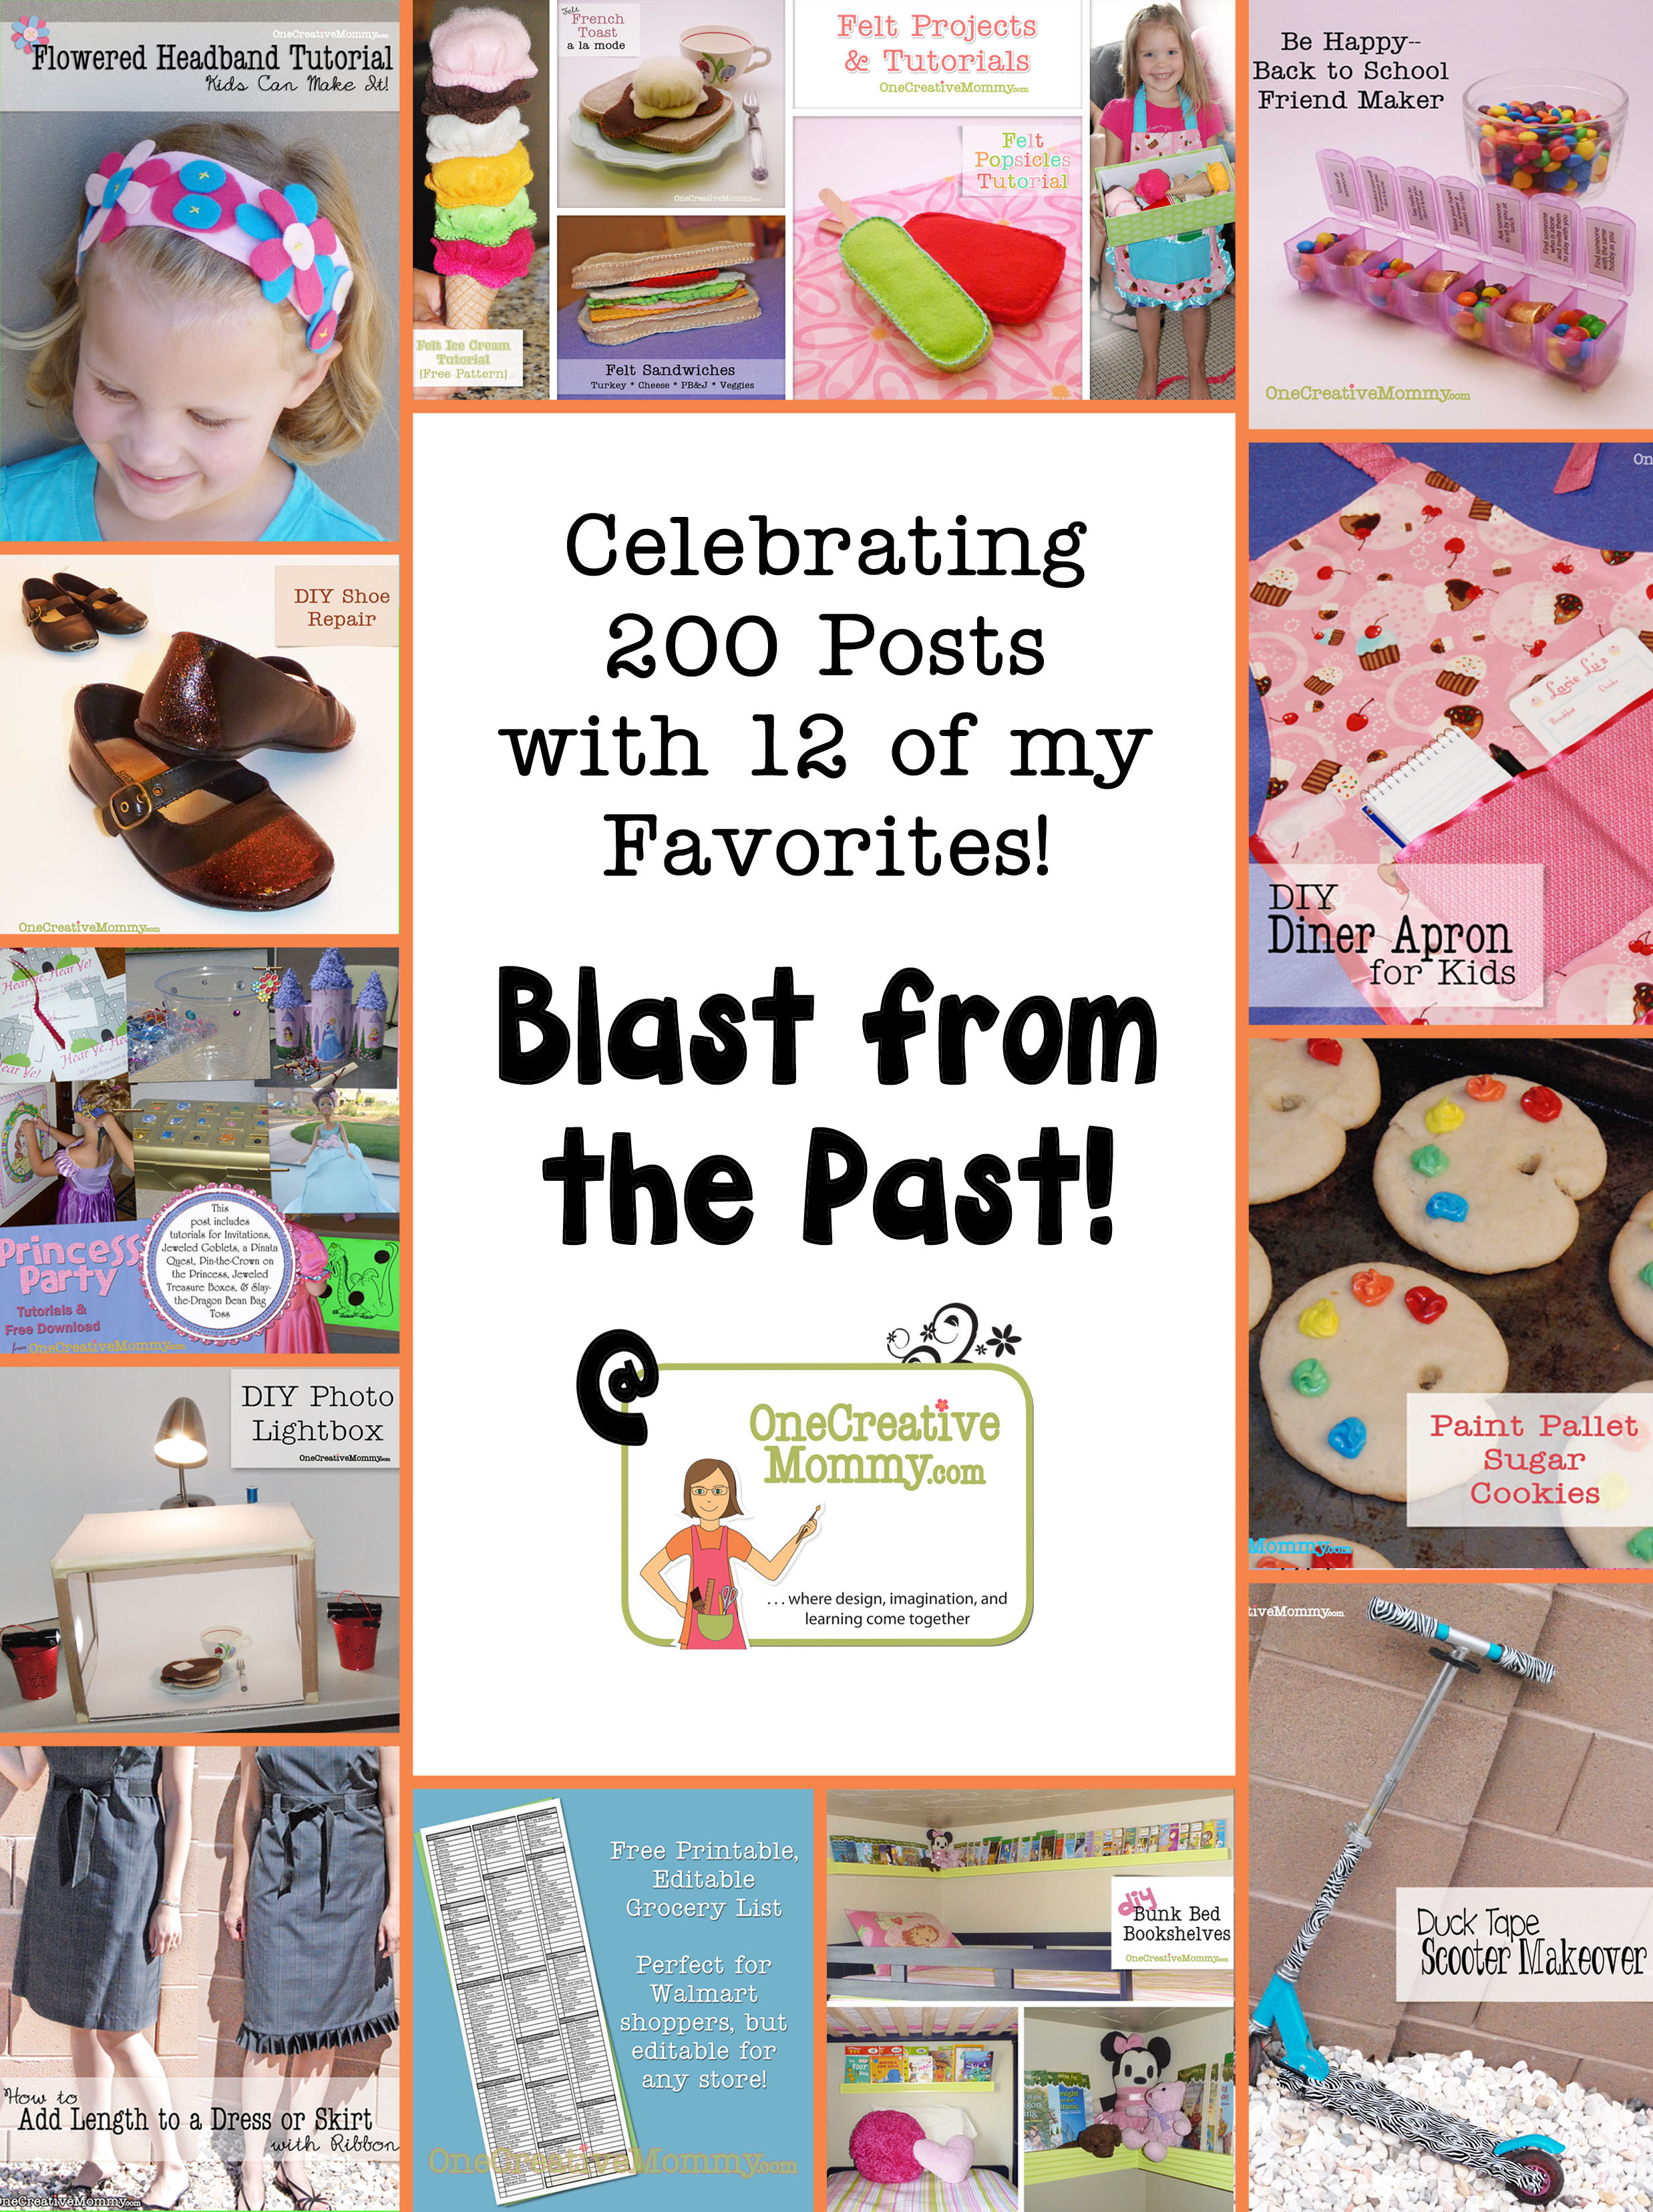 12 Favorite Projects from my First 200 Posts on OneCreativeMommy.com {Which is your favorite?}